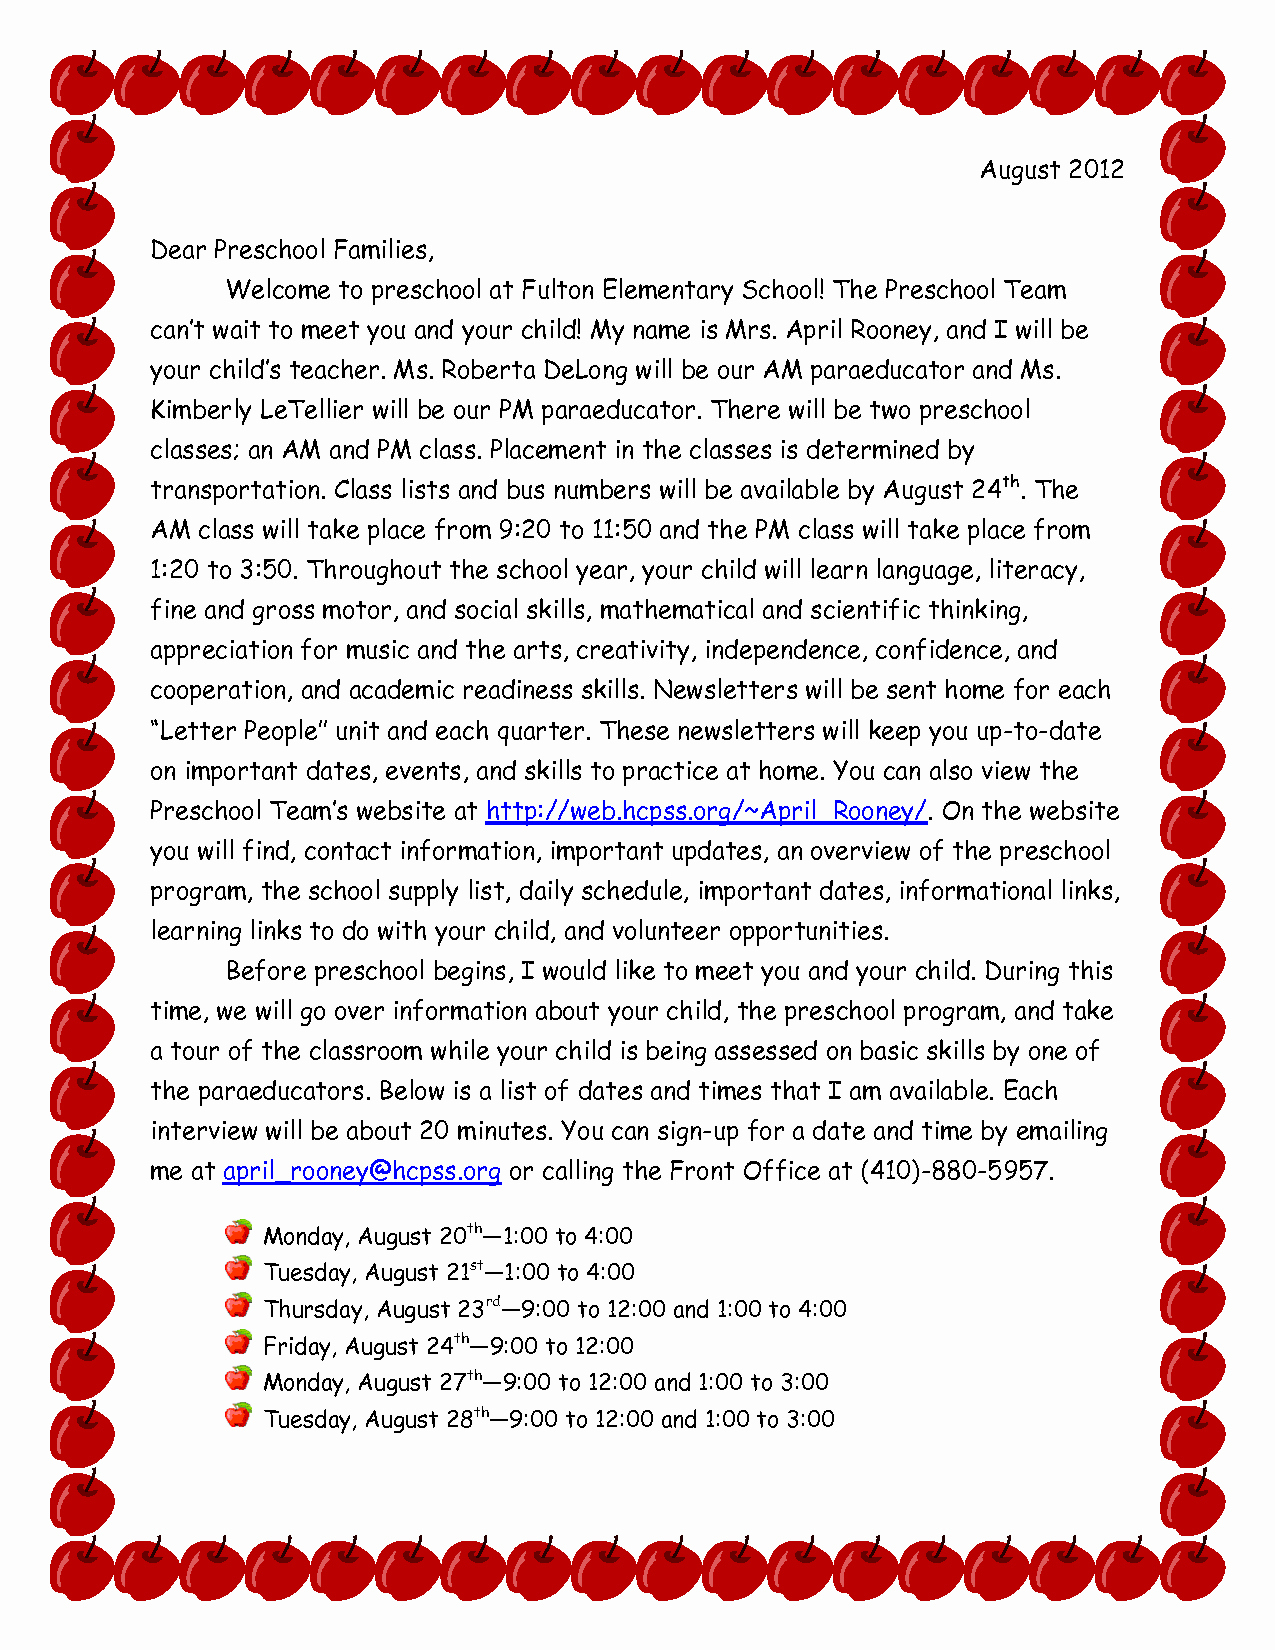 Preschool Welcome Letter Template - Cover Letter for Preschool Teacher Awesome Preschool Wel E Letter to